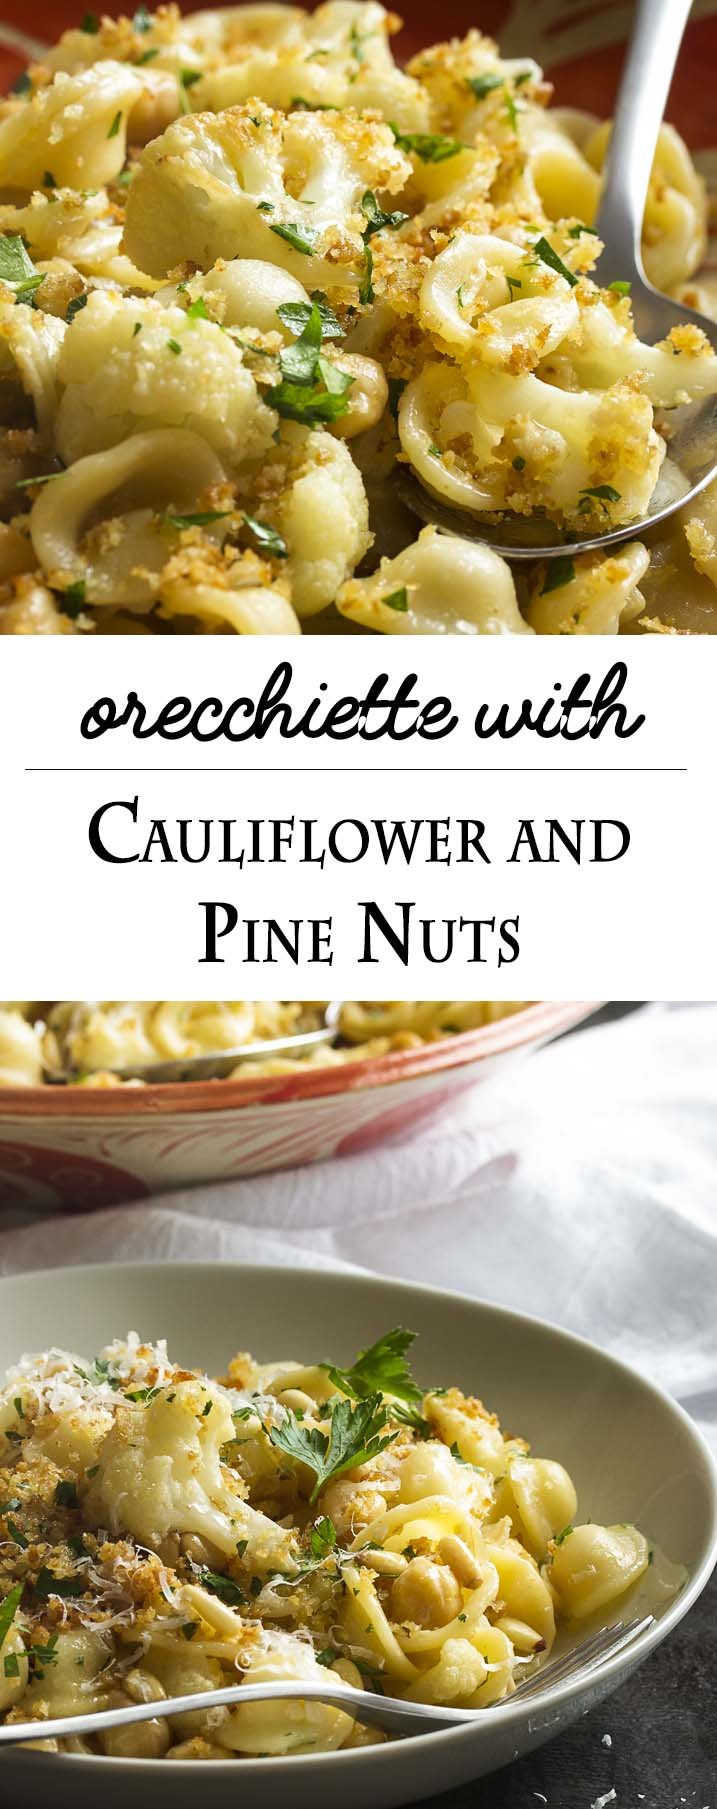 Orecchiette is tossed with sauteed cauliflower and toasted pine nuts, then topped with crispy bread crumbs, in this easy Italian vegetarian weeknight pasta dinner. | justalittlebitofbacon.com